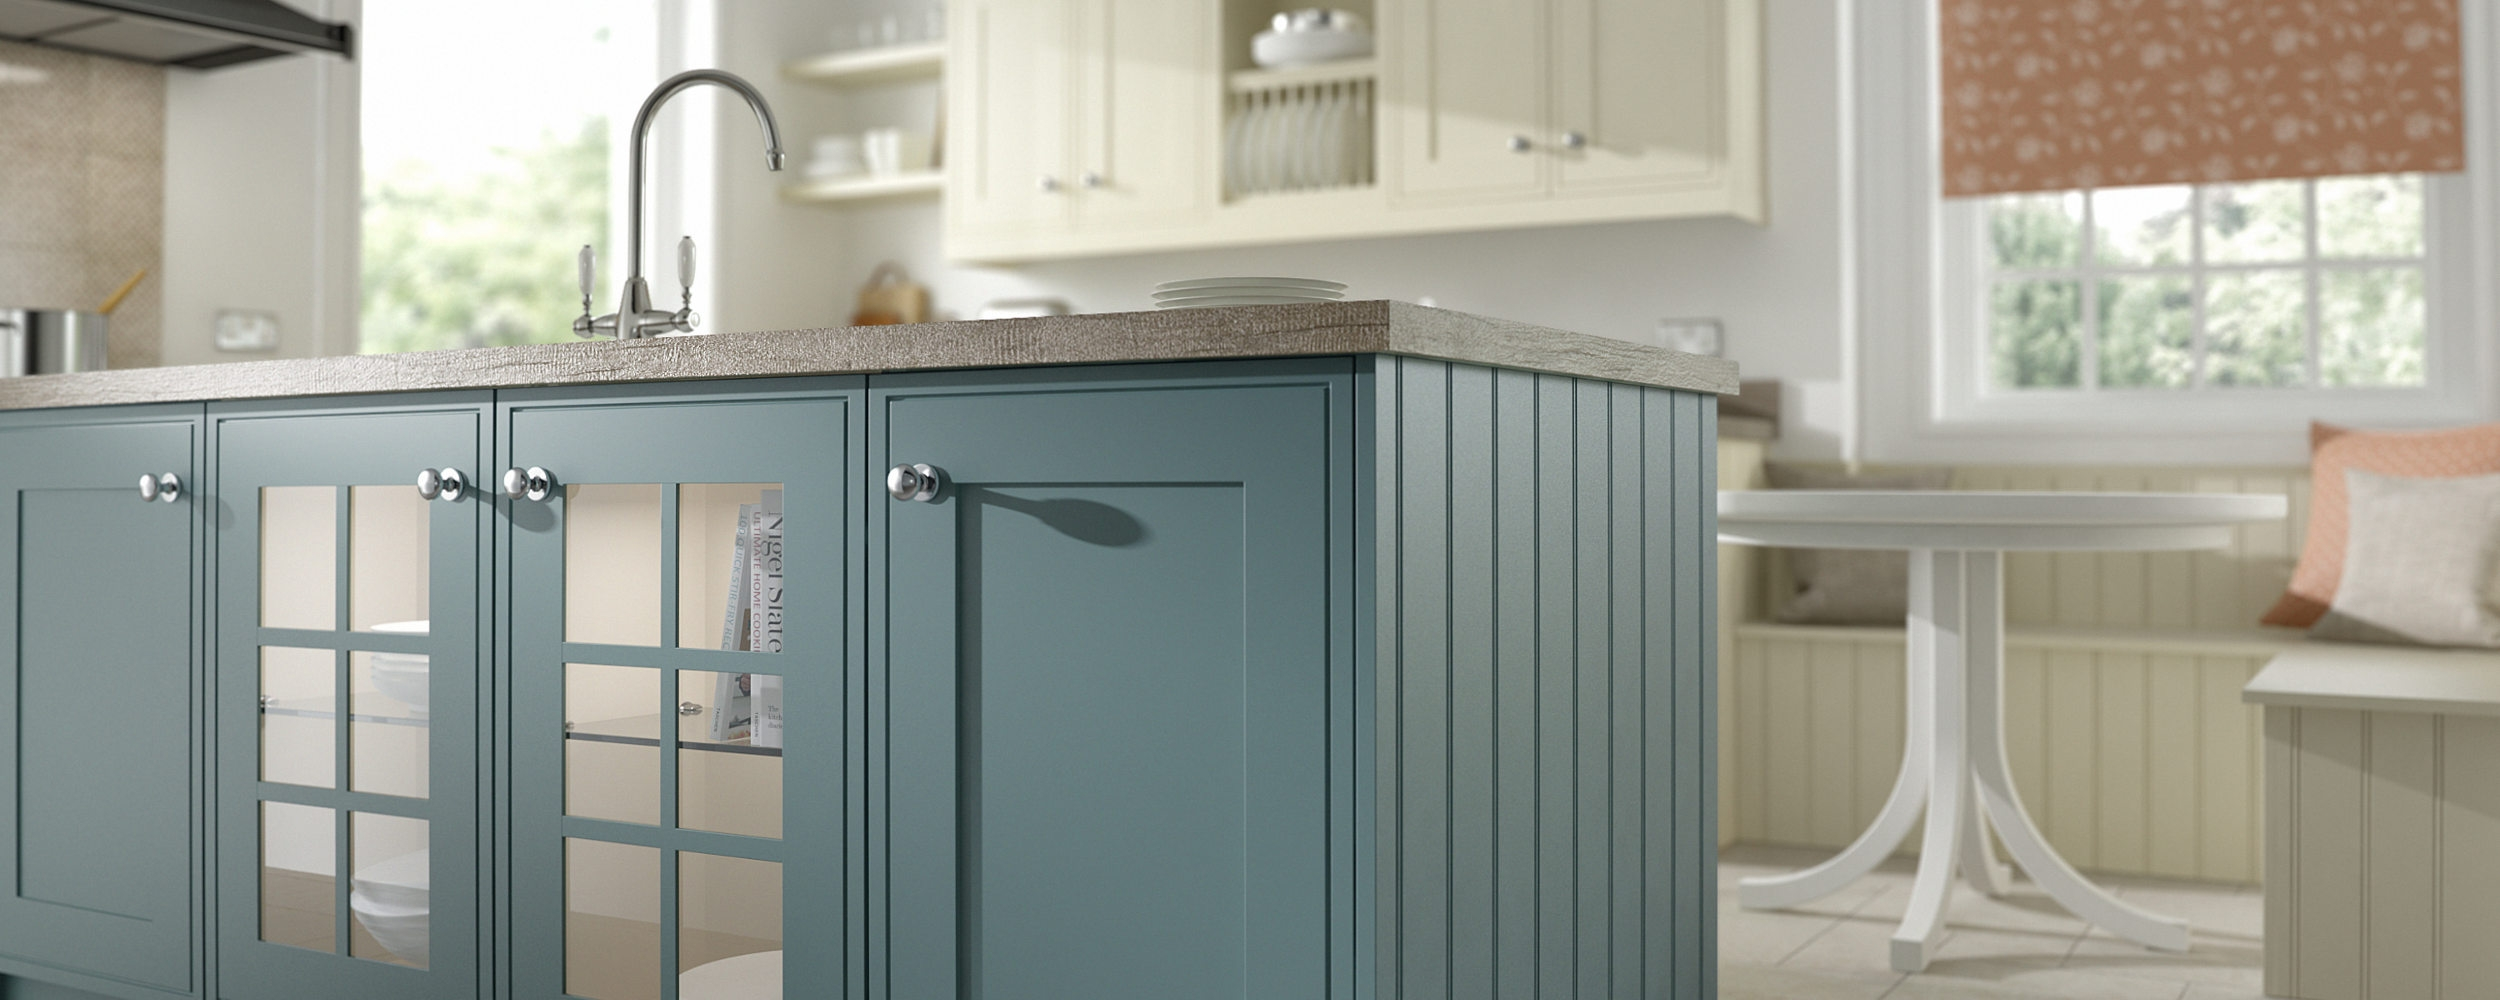 shaker-line-kitchen-scotland